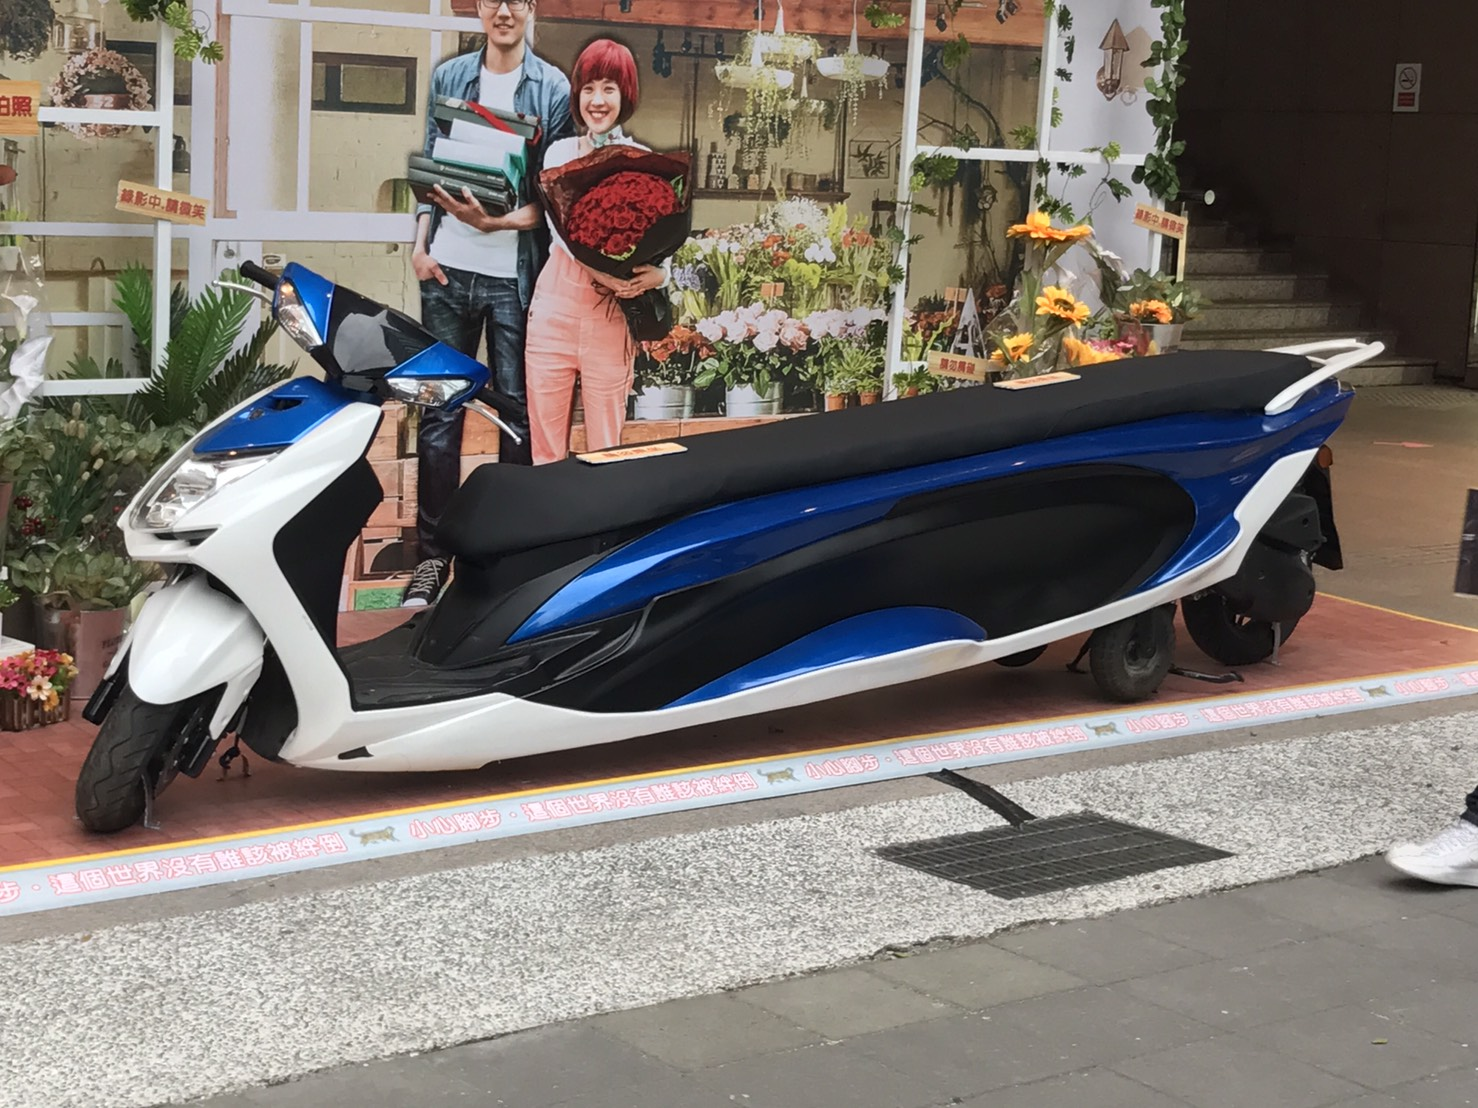 A modified scooter in Taipei. (Image from Dcard)